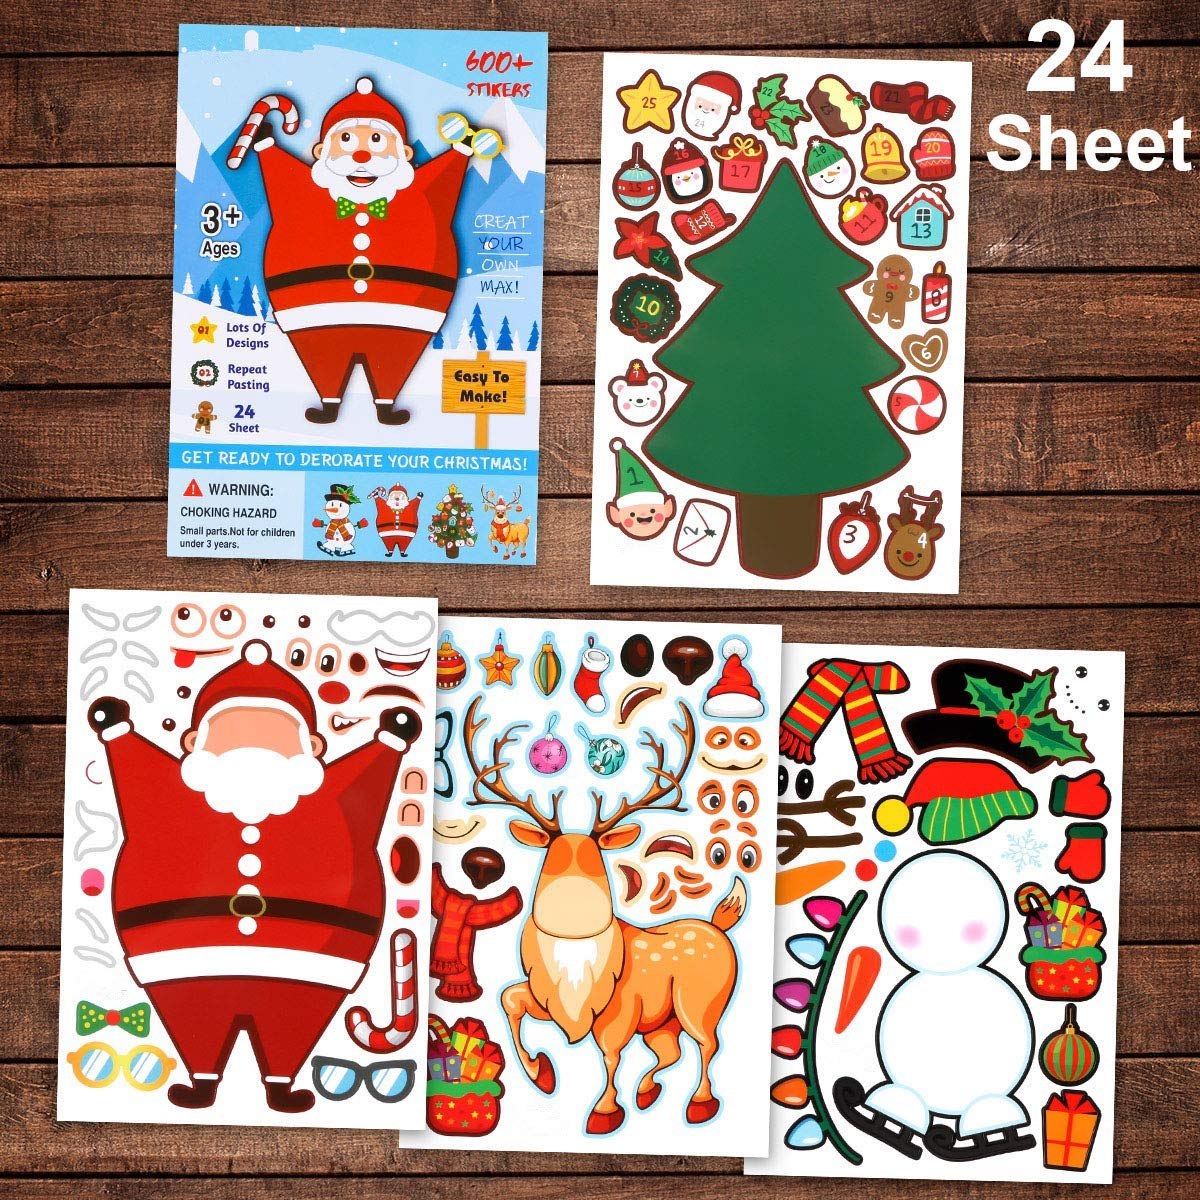 Christmas Stickers - Make A Snowman/Christmas Tree/Santa Claus/ Reindeer Christmas Stickers,Christmas Party Games Favors & Decorations DIY Stickers for Kids (Make A Christmas Decoration Stickers)